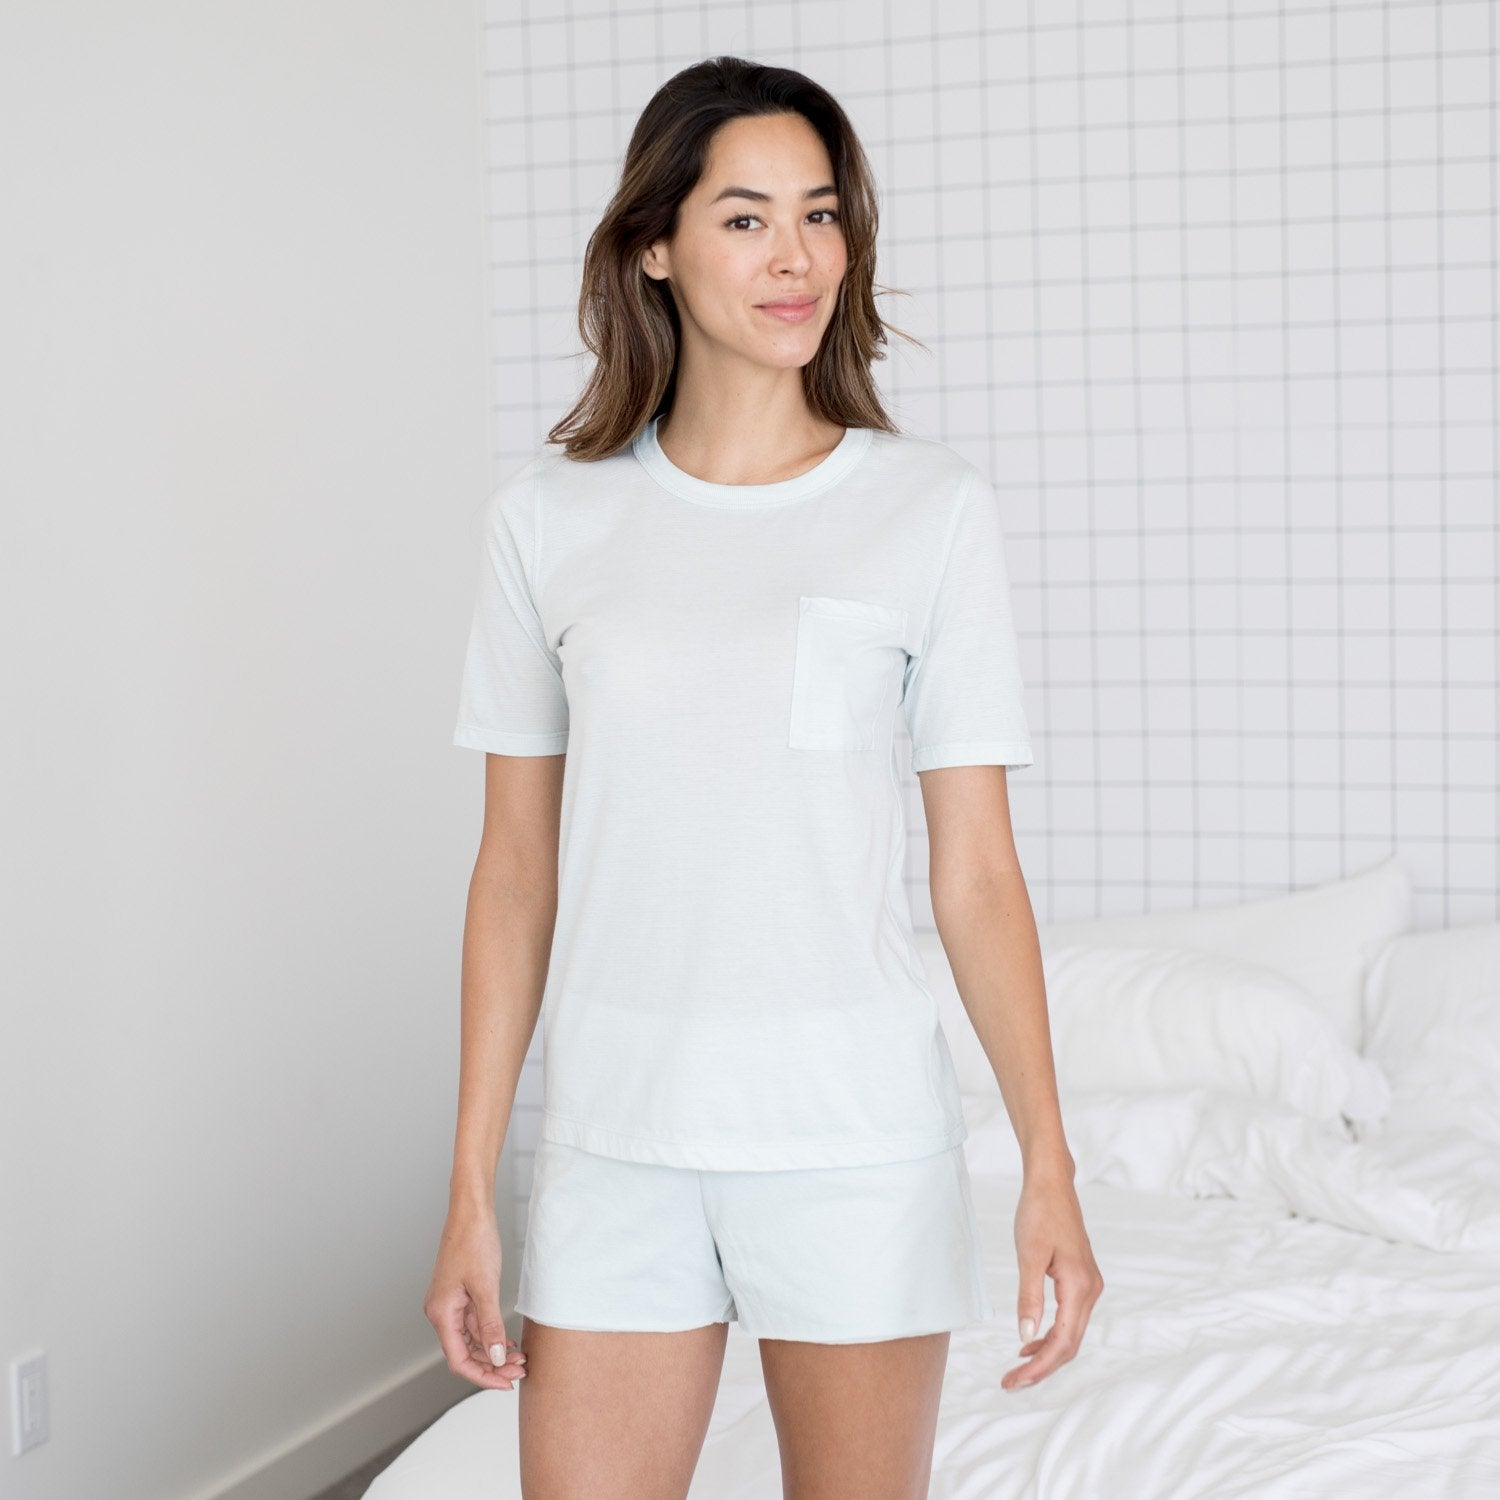 Lunya Sleepwear Cool Short Sleeve Tee - #Brisk